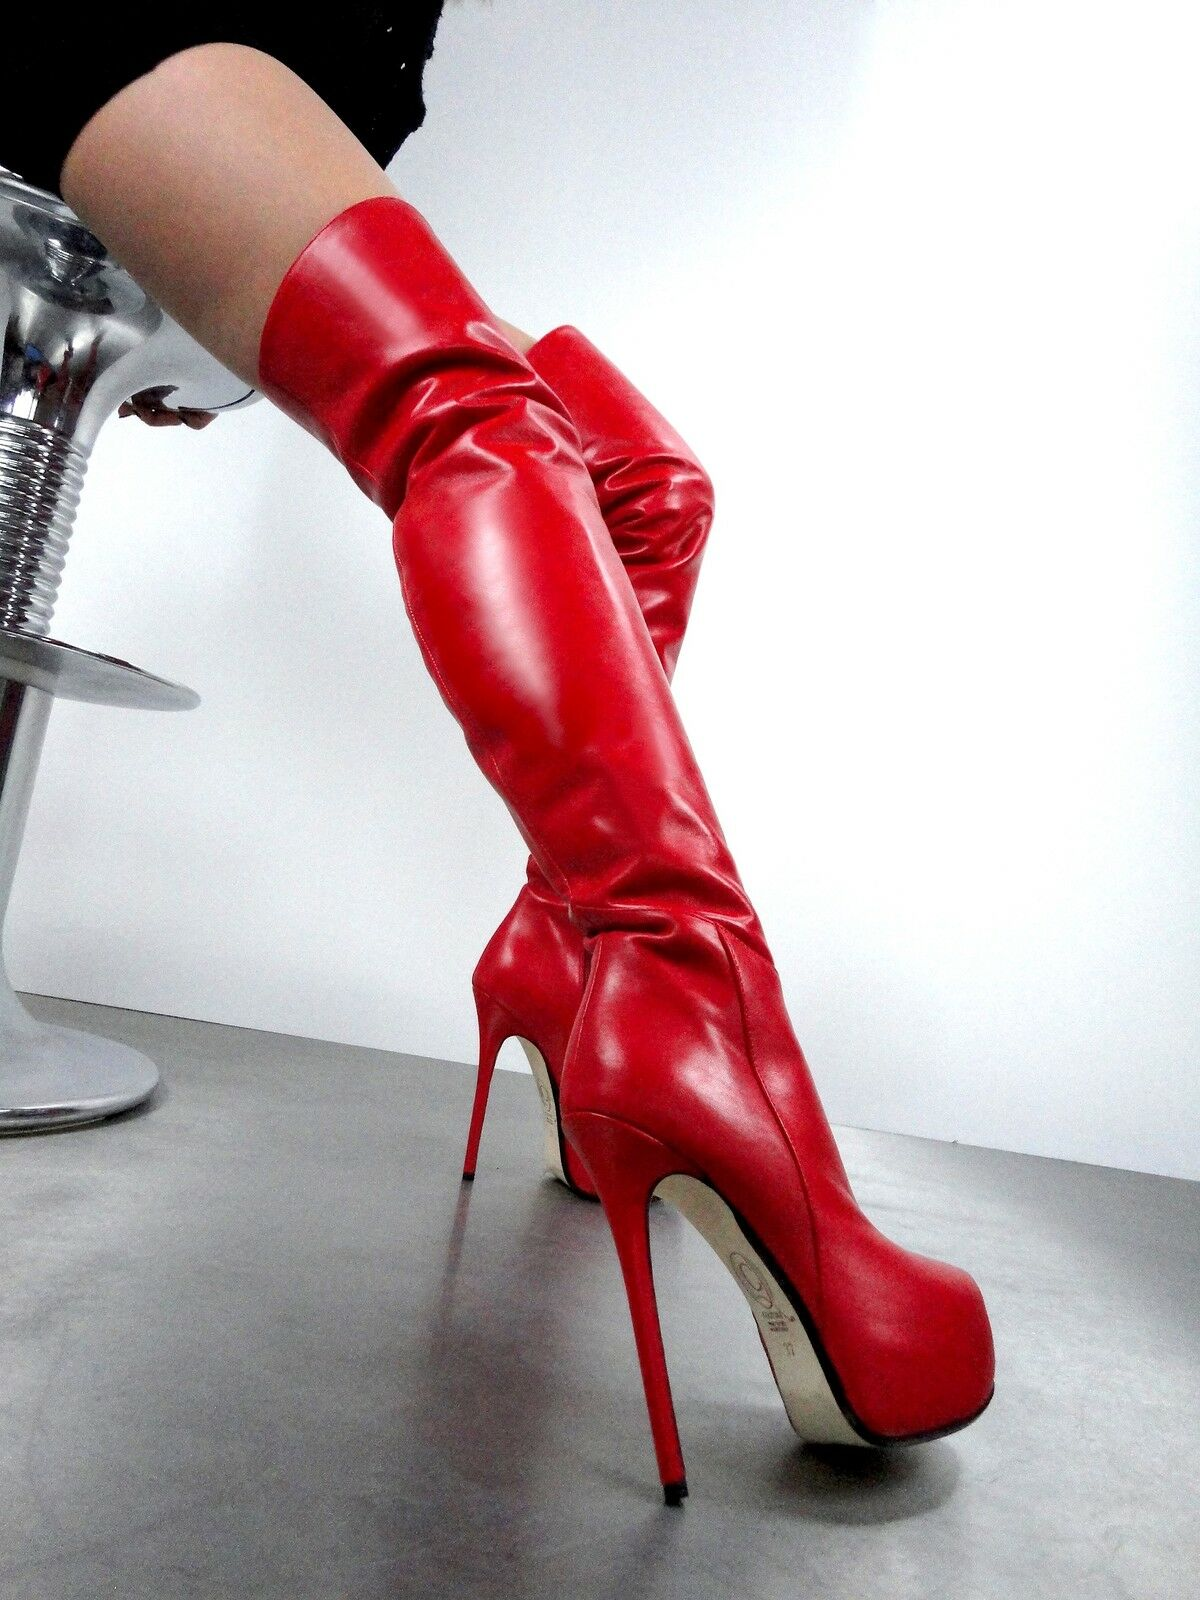 CQ COUTURE OVERKNEE CUSTOM PLATFORM BOOTS STIEFEL STIVALI LEATHER RED ROSSO 44